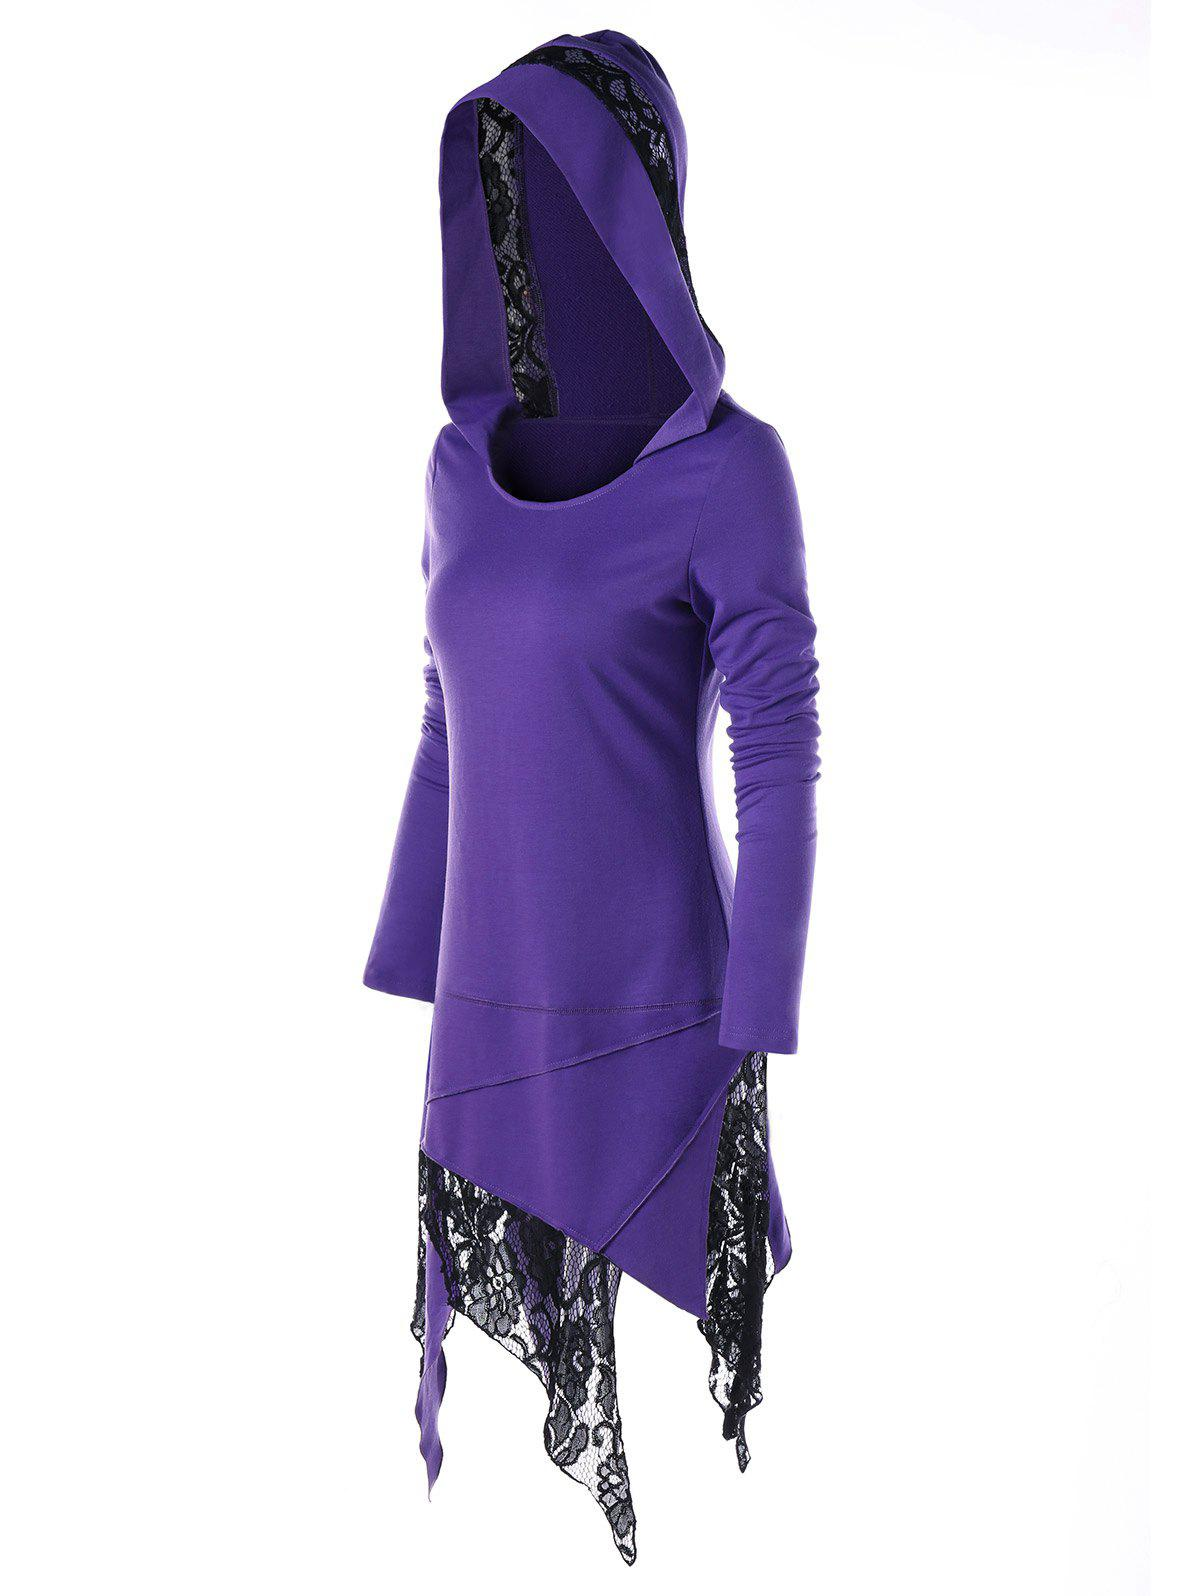 Asymmetrical Lace Panel Midi Hoodie DressWOMEN<br><br>Size: M; Color: PURPLE; Style: Casual; Material: Polyester; Silhouette: Asymmetrical; Dresses Length: Mid-Calf; Neckline: Hooded; Sleeve Length: Long Sleeves; Pattern Type: Patchwork; With Belt: No; Season: Fall,Spring; Weight: 0.4000kg; Package Contents: 1 x Dress;